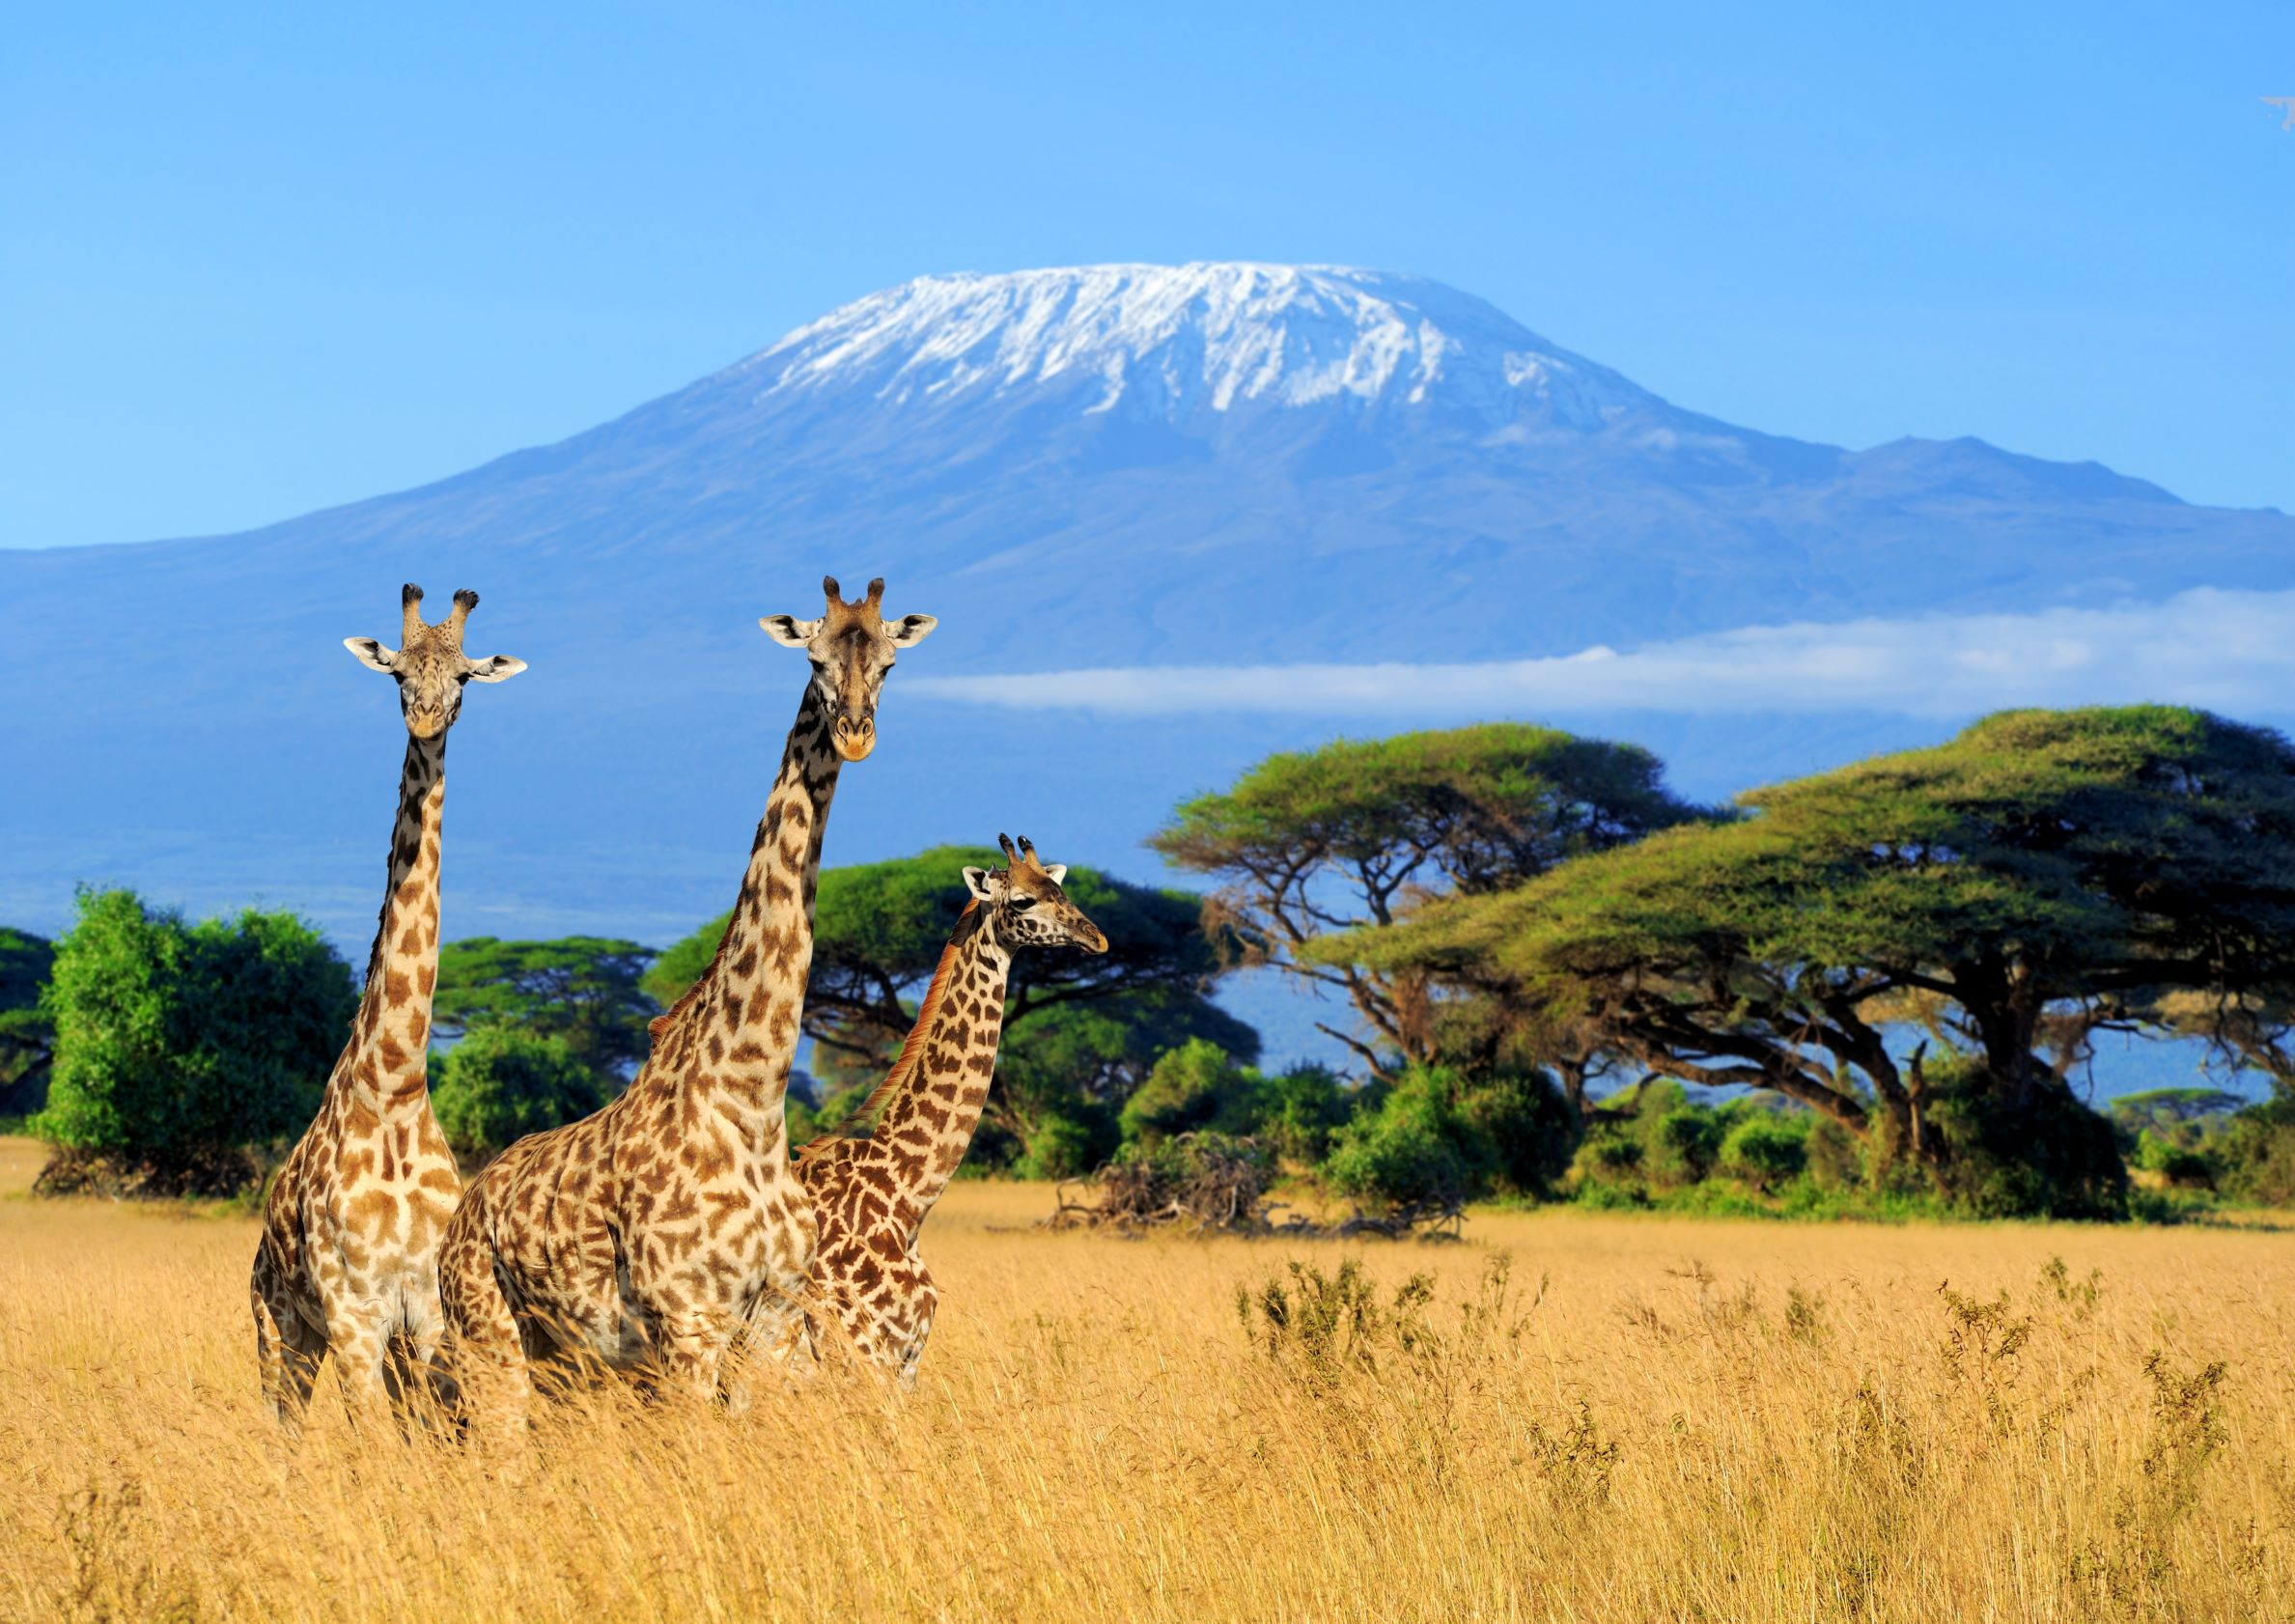 Three giraffe in National park of Kenya